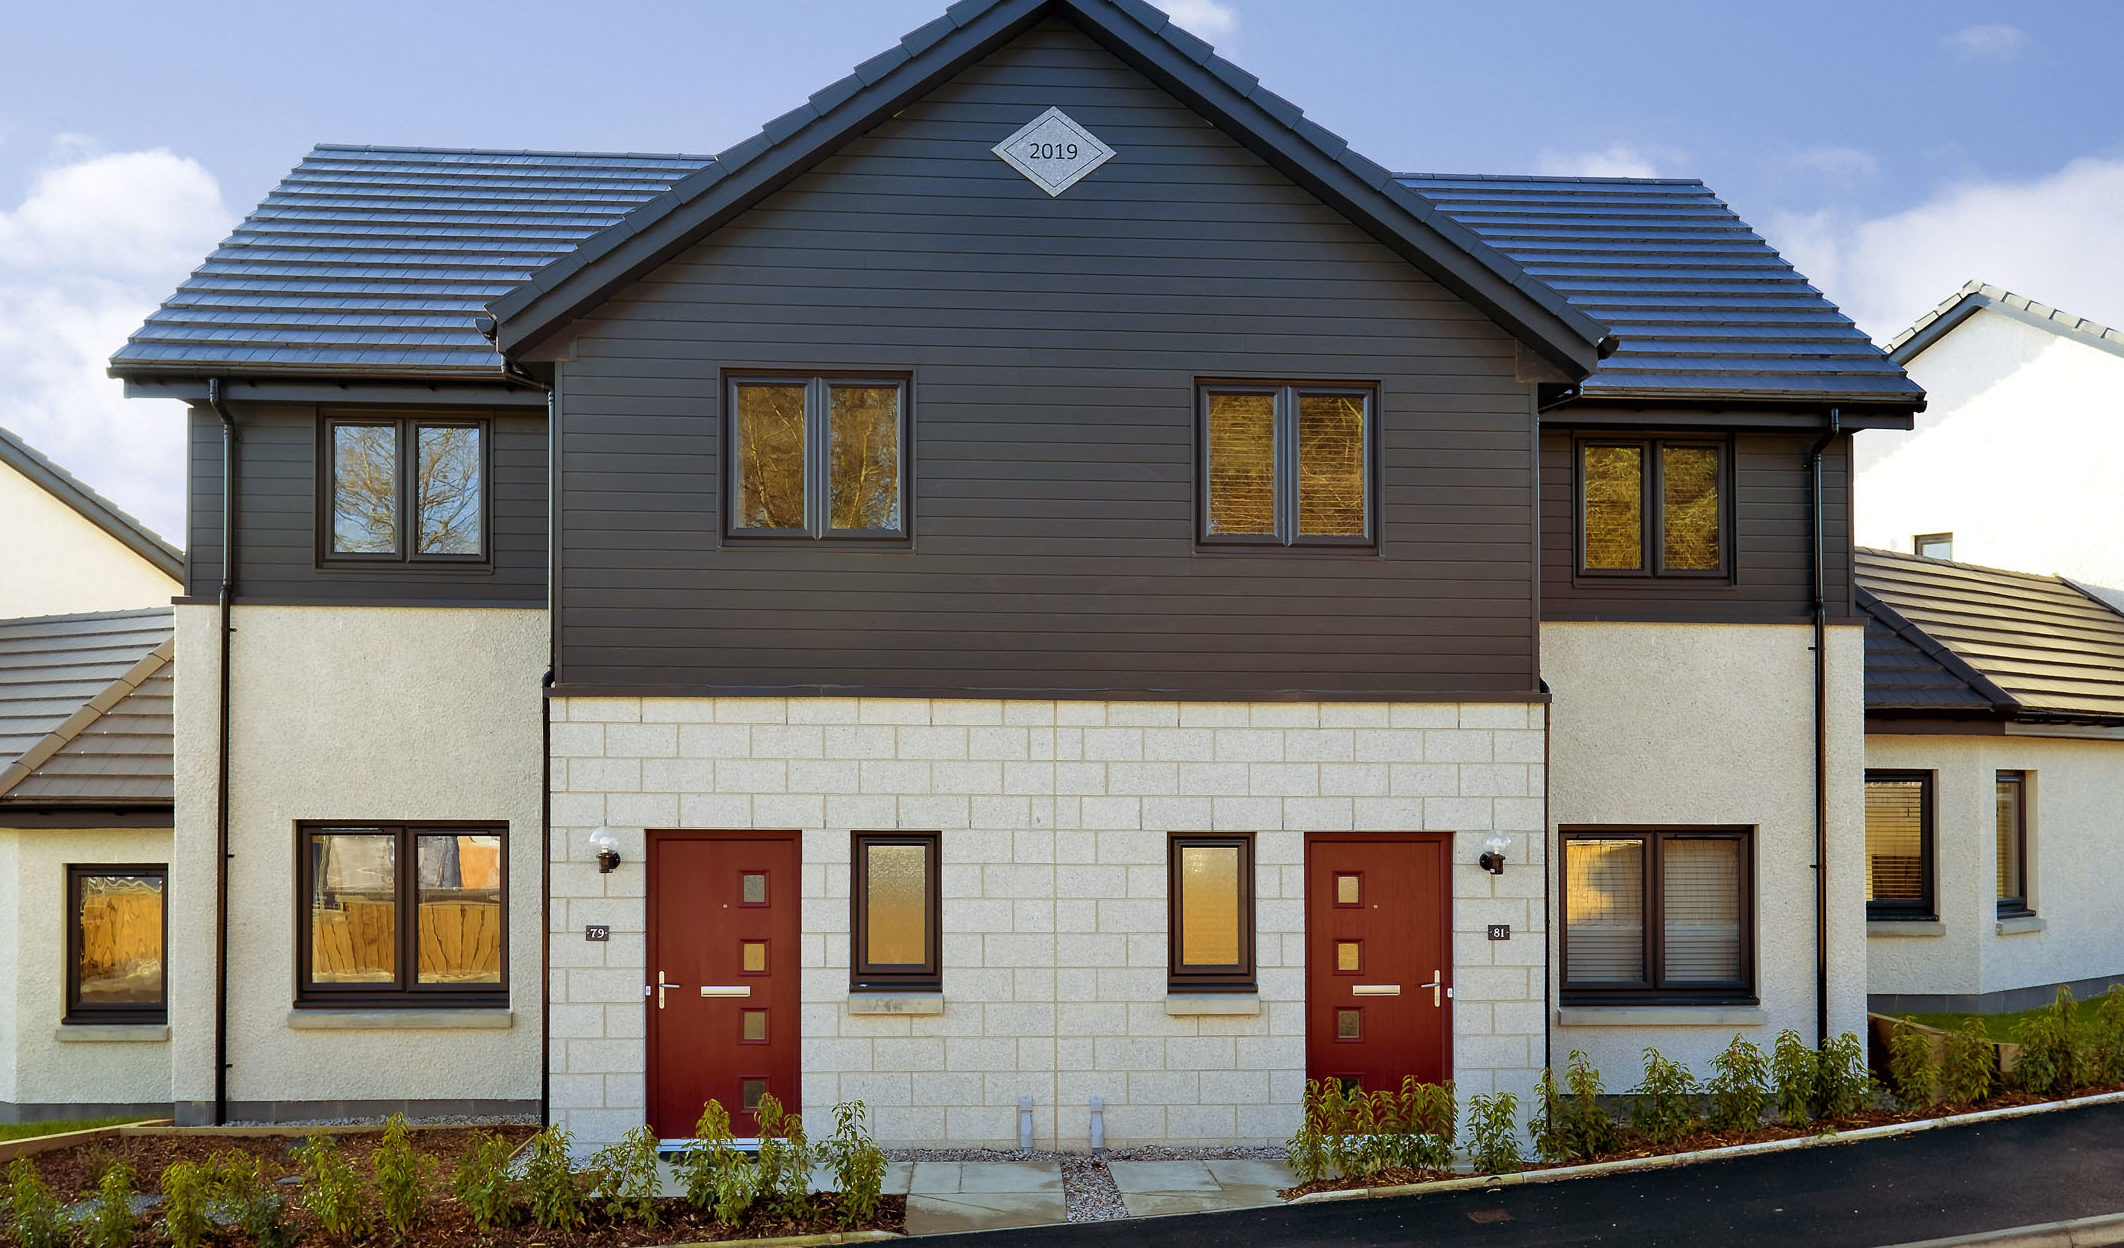 Bancon Homes will build 208 new homes in the west of Aberdeen after obtaining planning approval from the city council.